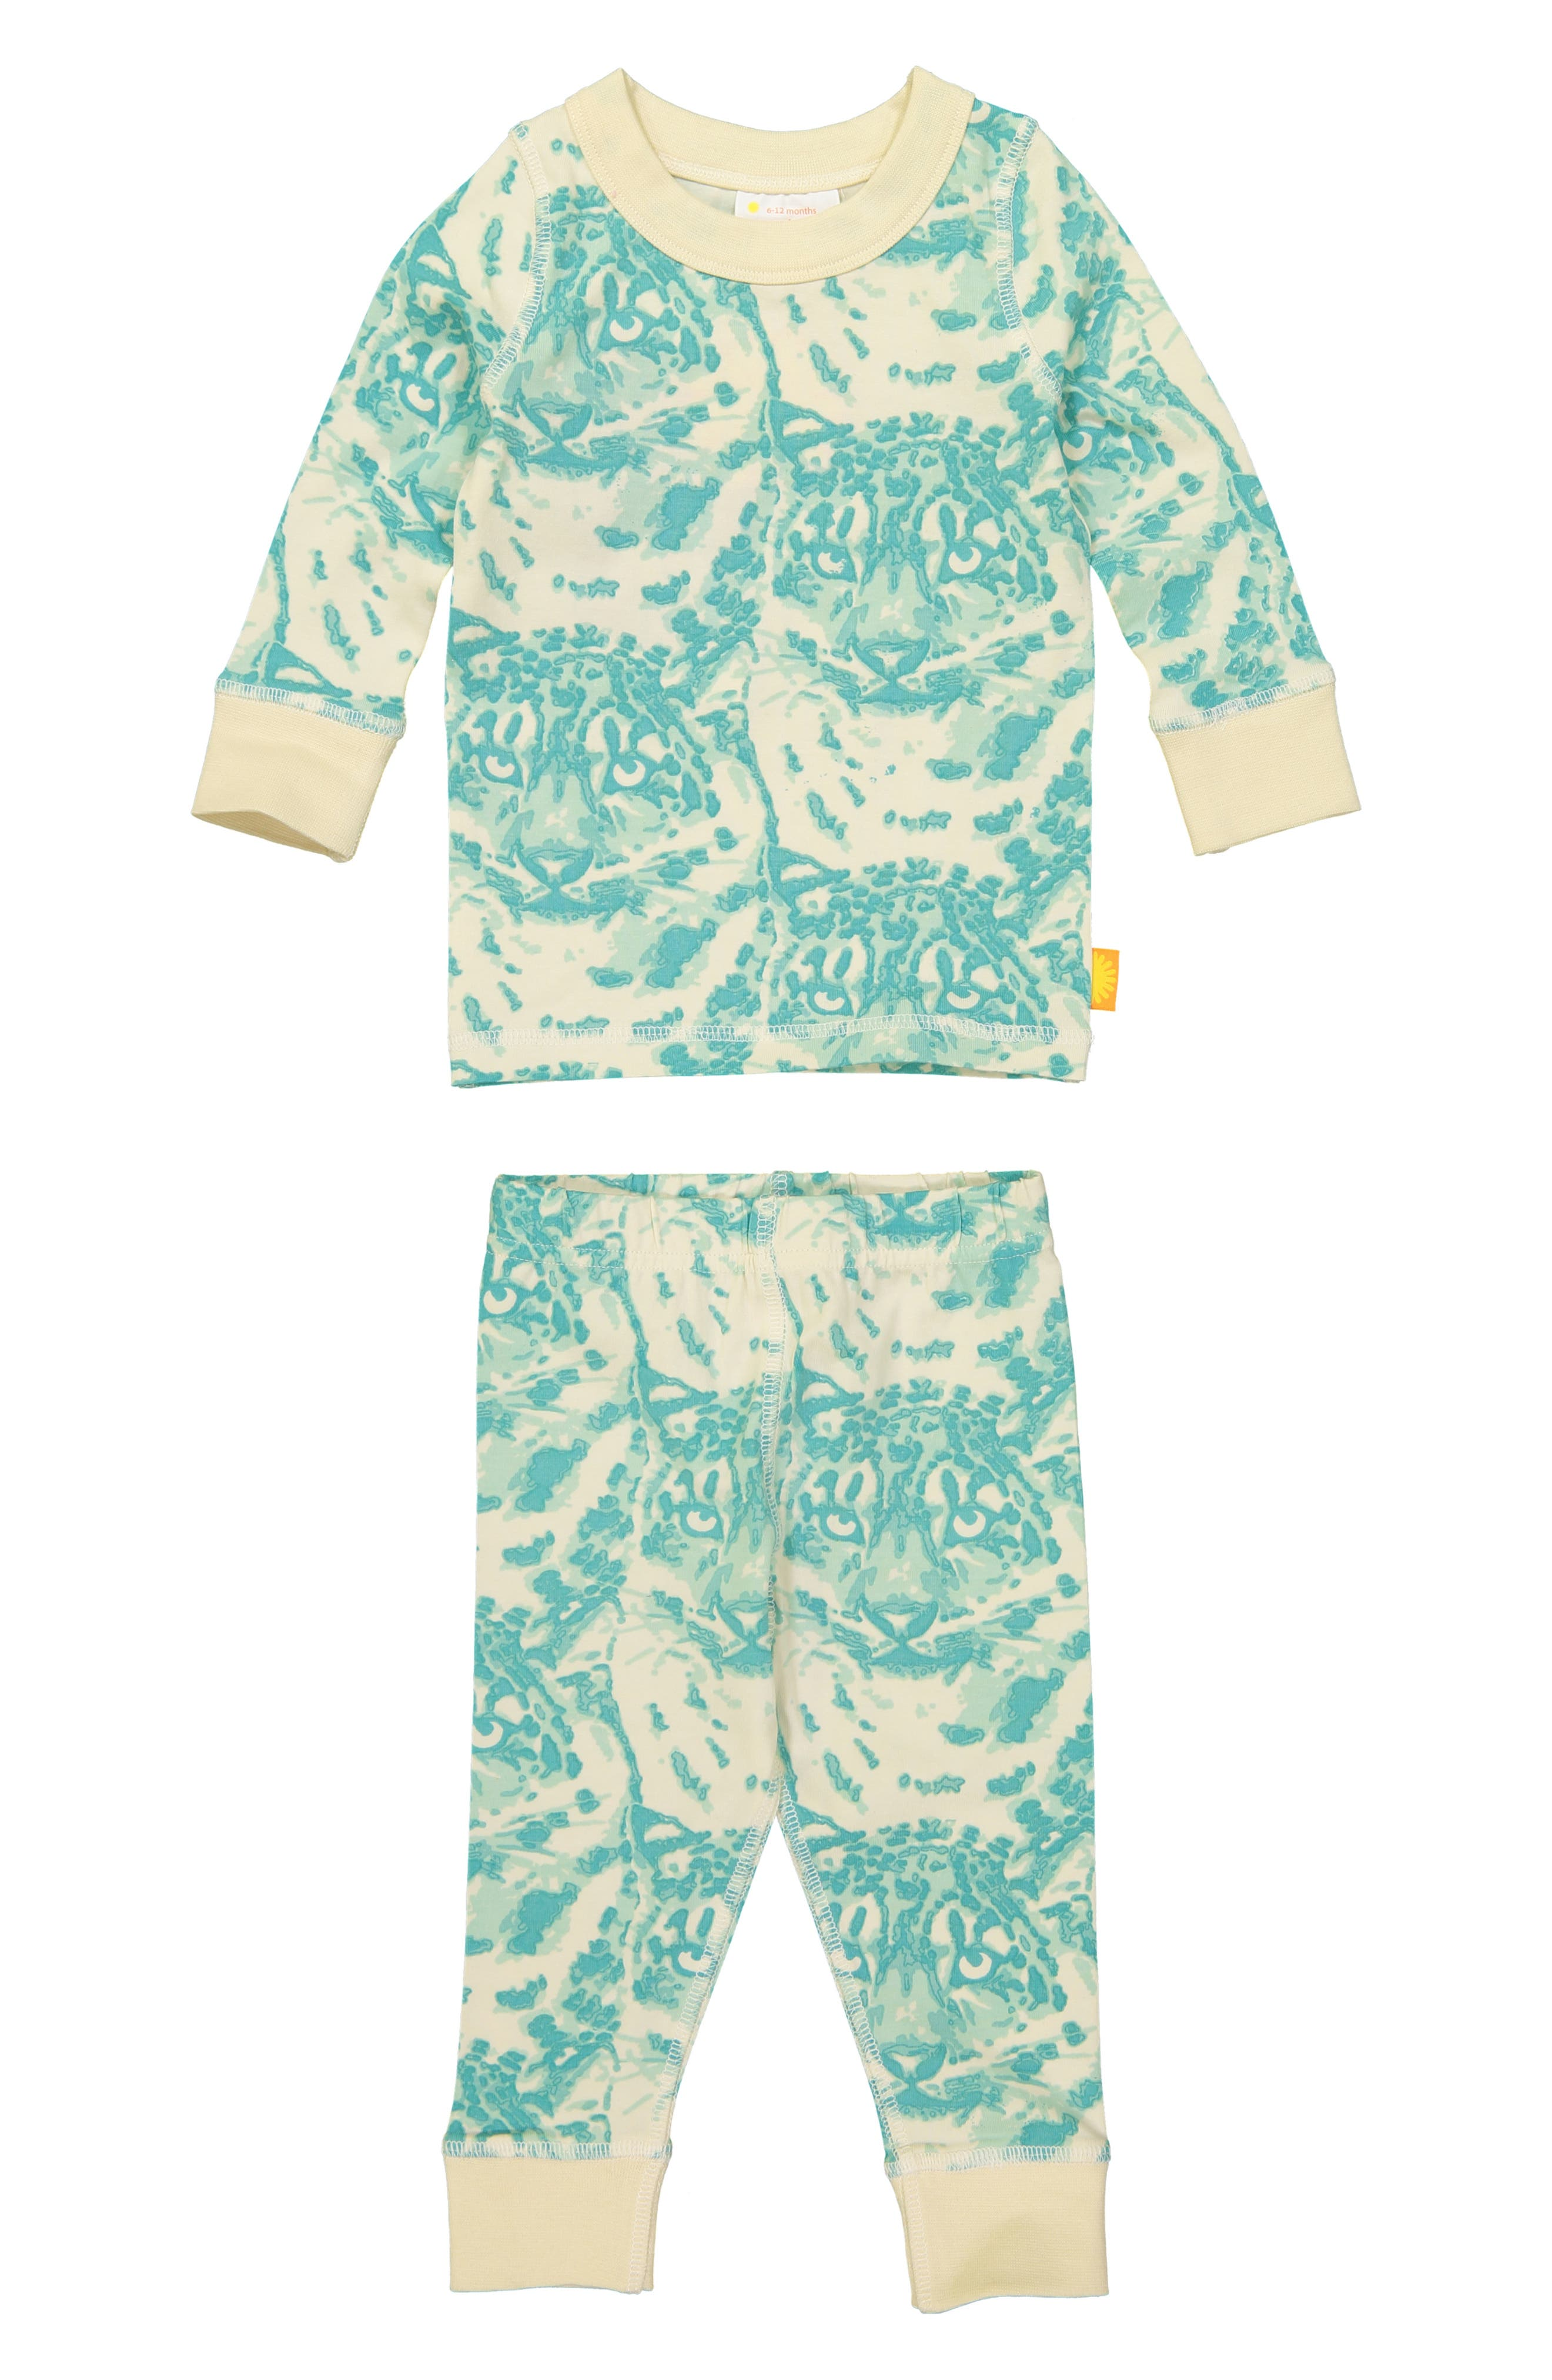 Cat Camo Organic Cotton Fitted Two-Piece Pajamas,                             Main thumbnail 1, color,                             AQUA